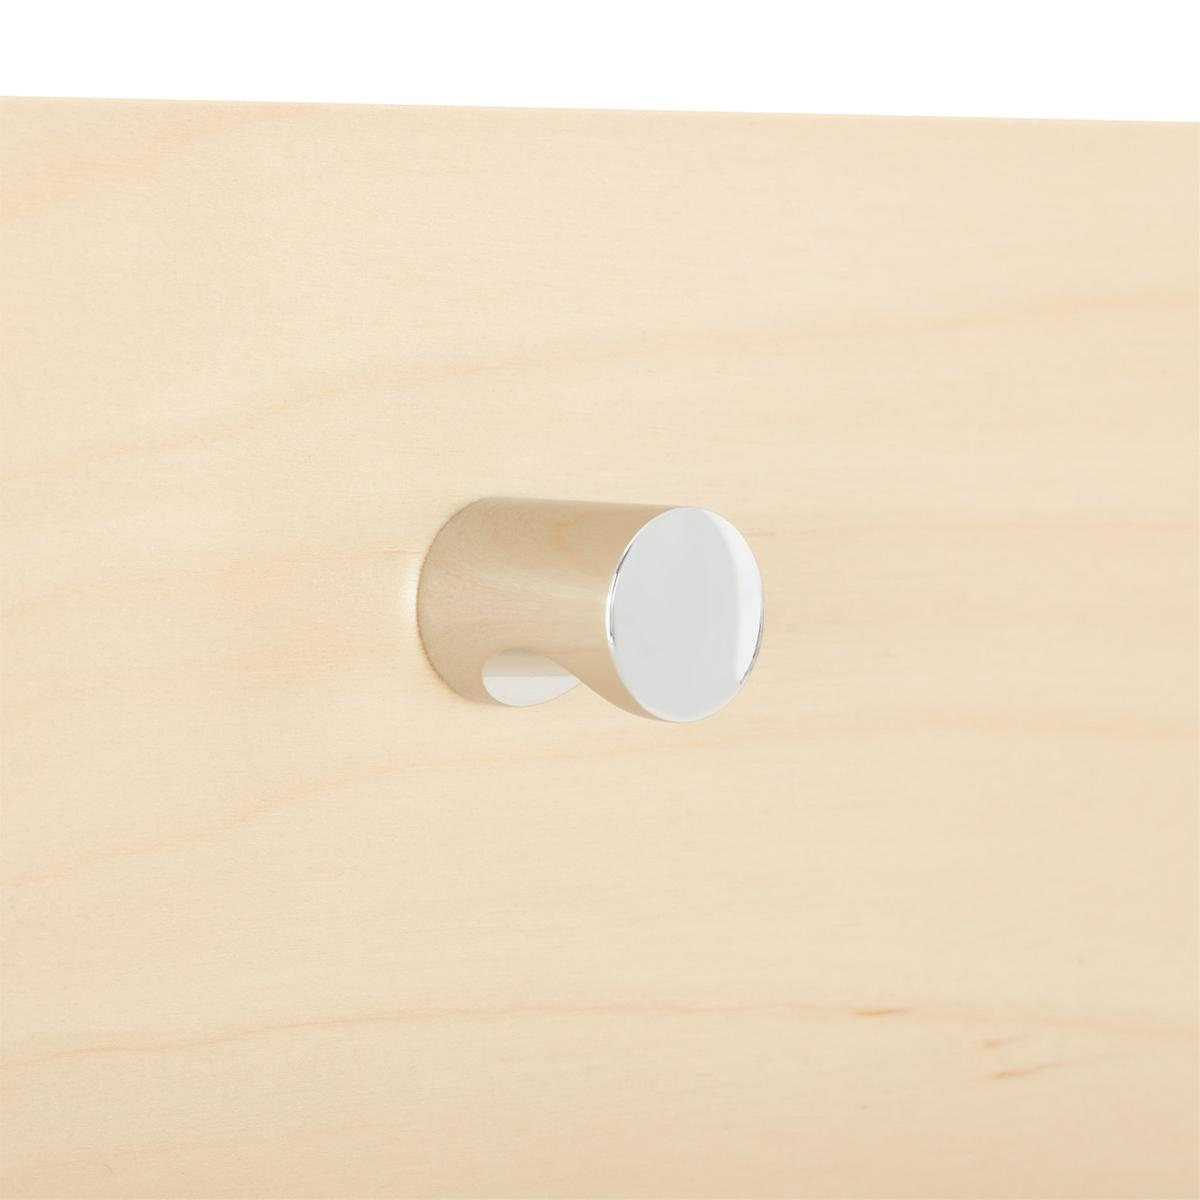 Elfa Decor Chrome Modern Knob